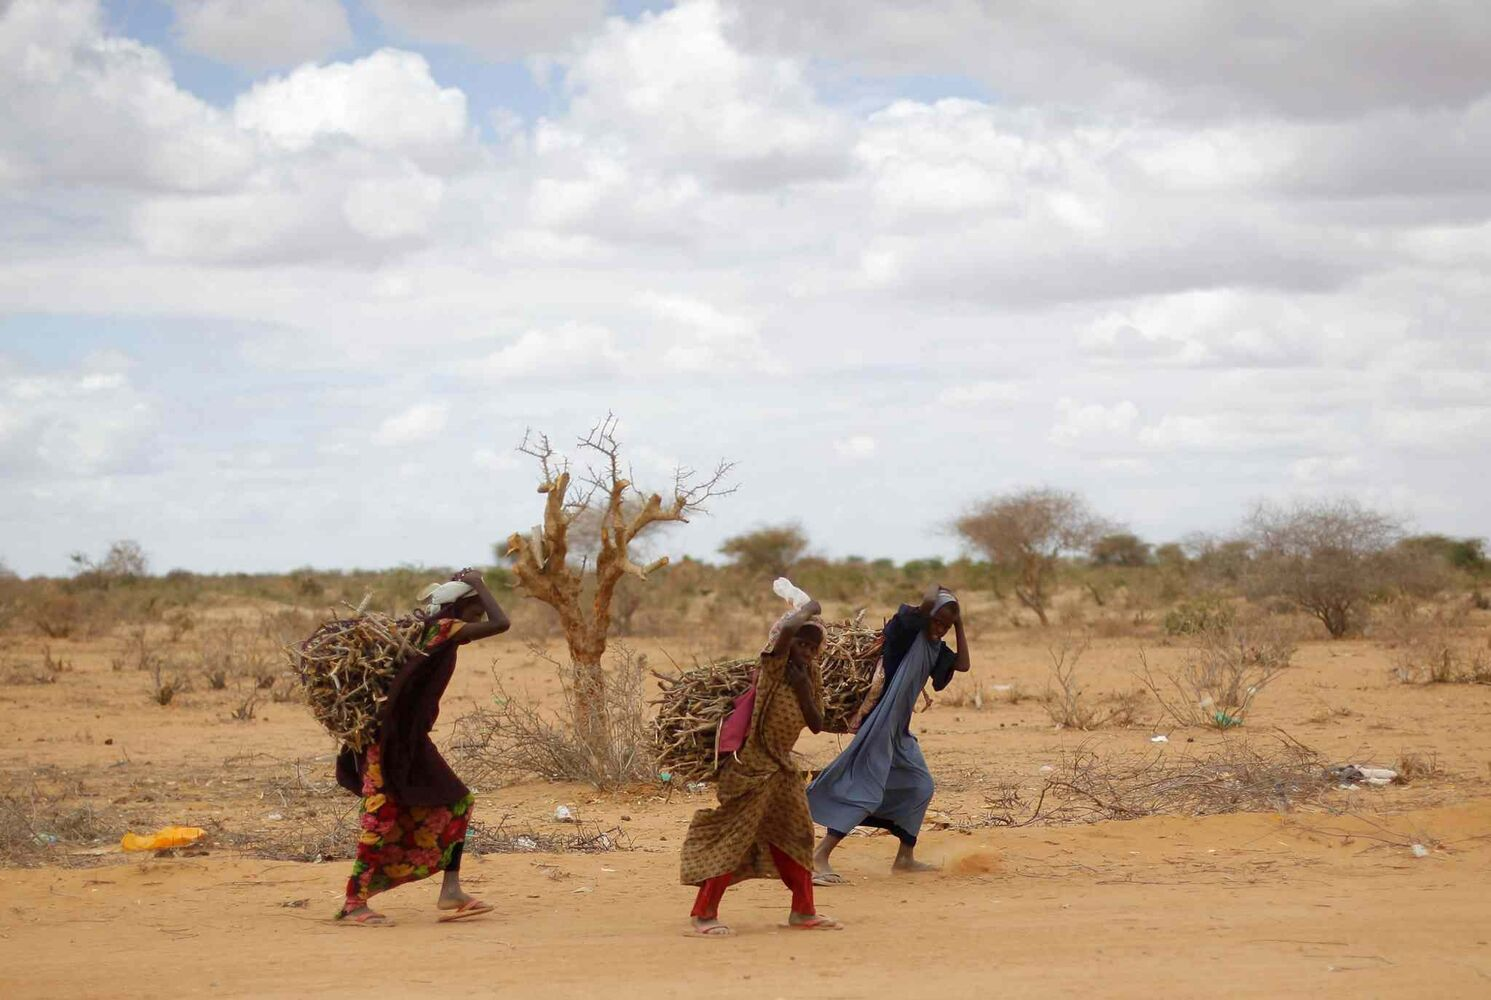 In this August 2011 photo, Somali refugees carry firewood to the LFO refugee camp outside  Dadaab, Eastern Kenya, 100 kilometers from the Somali border. Built in 1991 for 90,000 people, the camp has swelled to more than 400,000 registered refugees because of Somalia's long-running conflict and now its famine. Another 40,000 are waiting for official registration. New arrivals live on a 21-day ration handed out by the U.N., until they are formally registered. (Jerome Delay / The Associated Press)